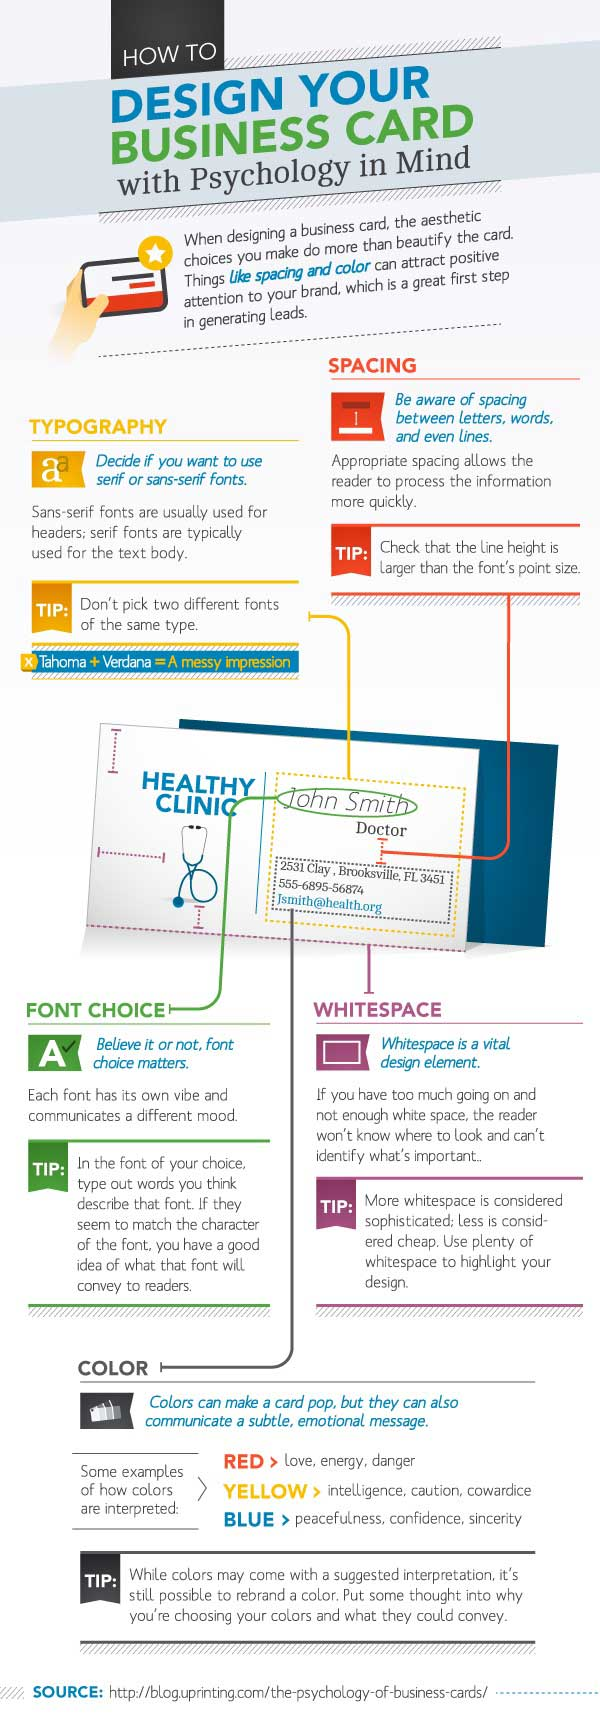 Graphic design how to design your business card with psychology check out the following infographic for more details about crafting an engaging business card magicingreecefo Choice Image